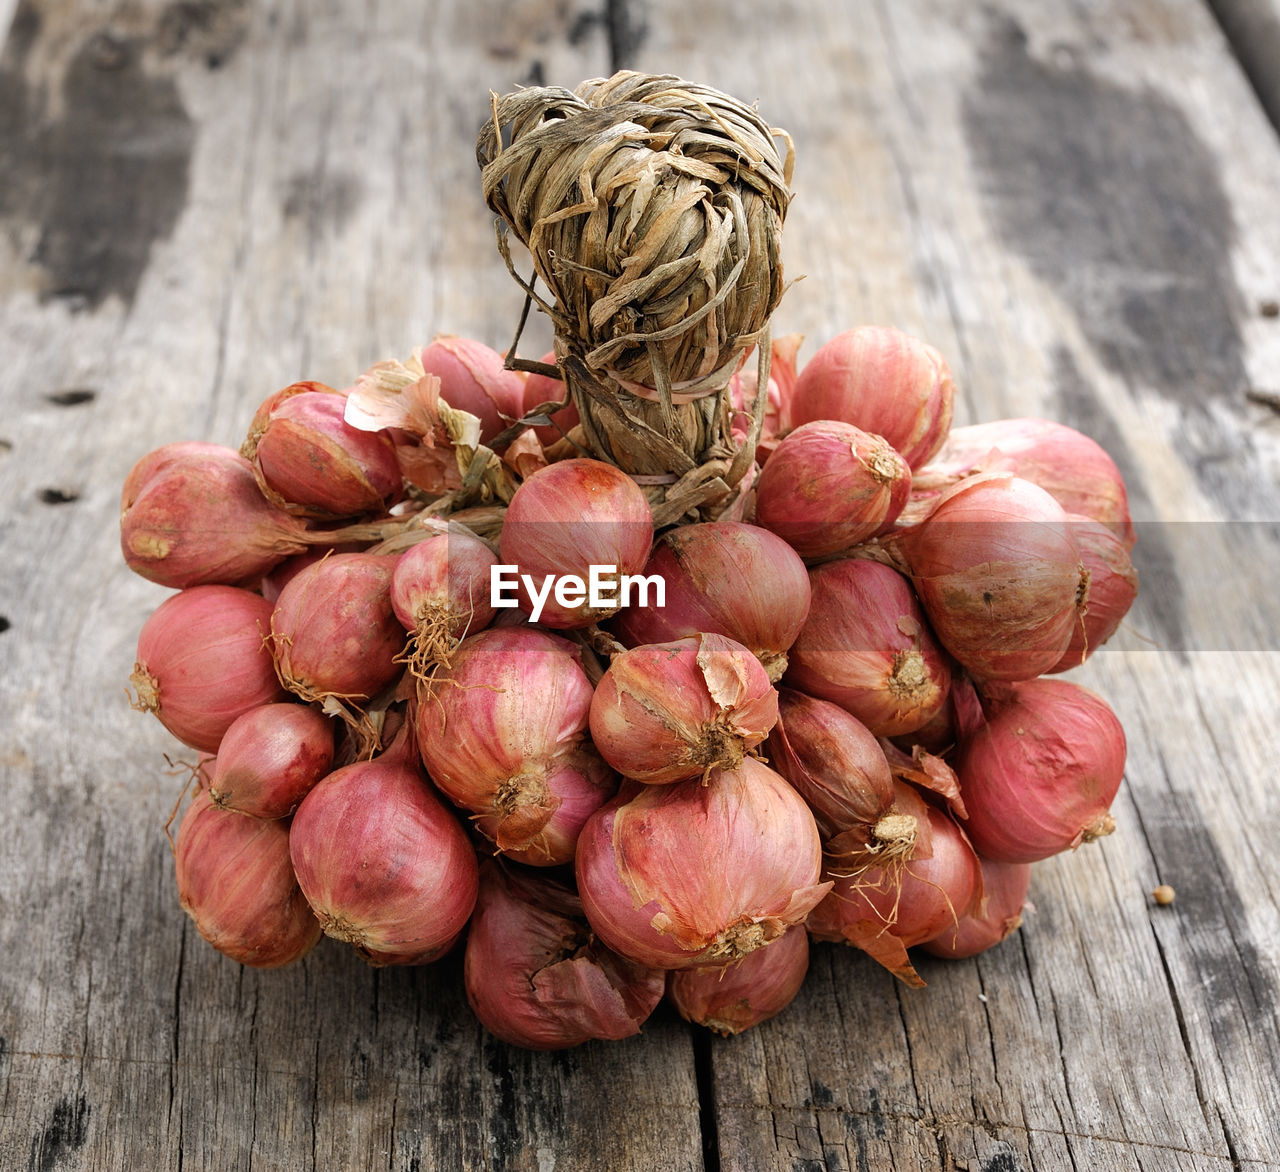 food and drink, food, healthy eating, freshness, wellbeing, wood - material, still life, table, vegetable, no people, close-up, day, high angle view, raw food, focus on foreground, large group of objects, brown, onion, outdoors, red